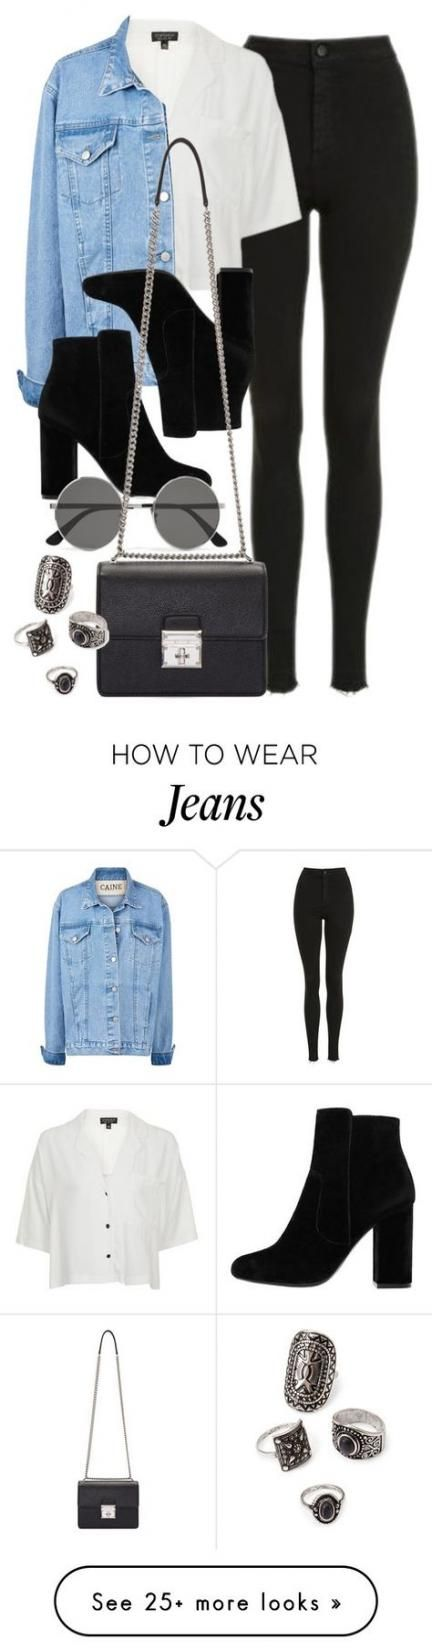 Fitness Outfits Women Clothing Boots 51 Ideas #boots #fitness